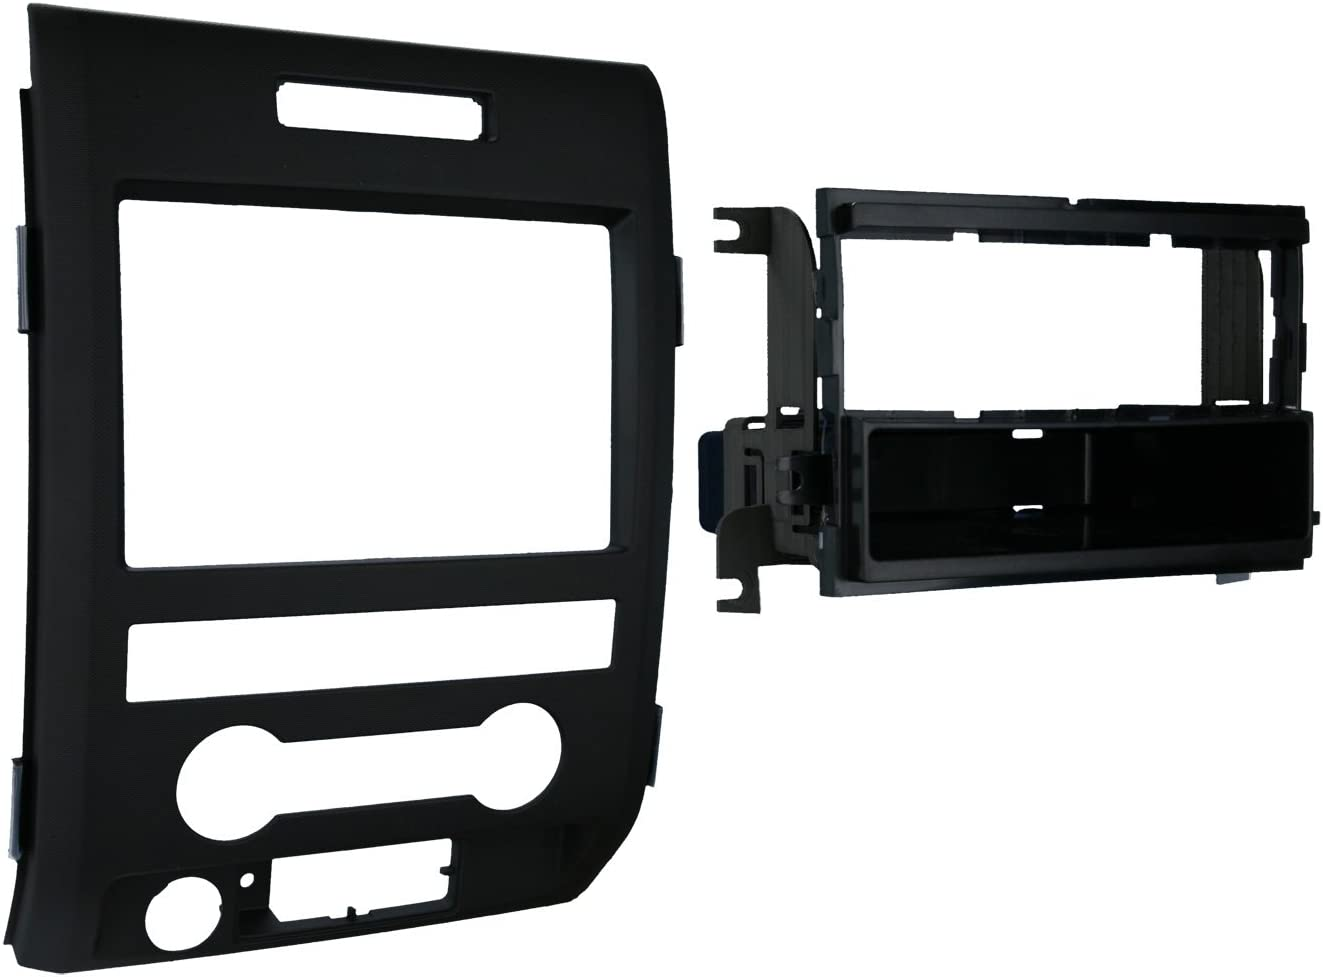 Metra 99-5820 Double or Single DIN Installation Dash Kit for 2009 Ford F-150 (Discontinued by Manufacturer)